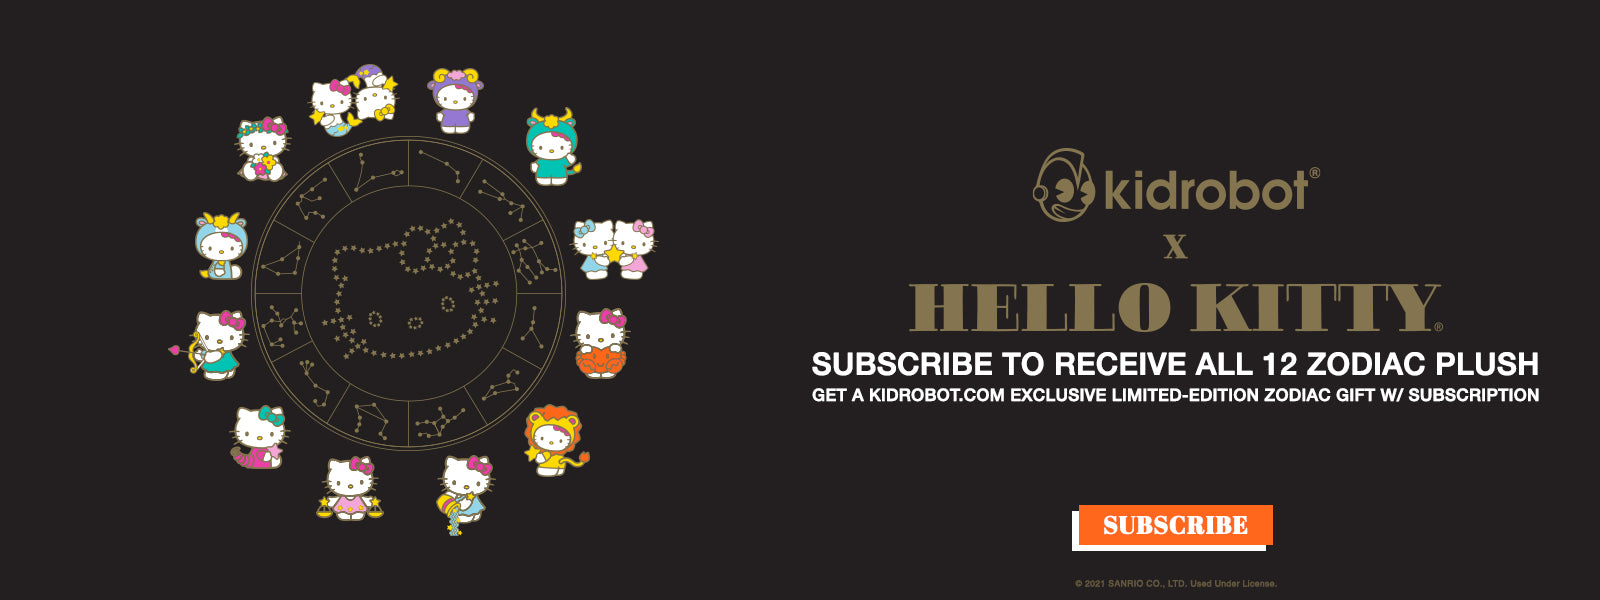 Hello Kitty Zodiac Plush Collection - Subscribe for Free Gifts